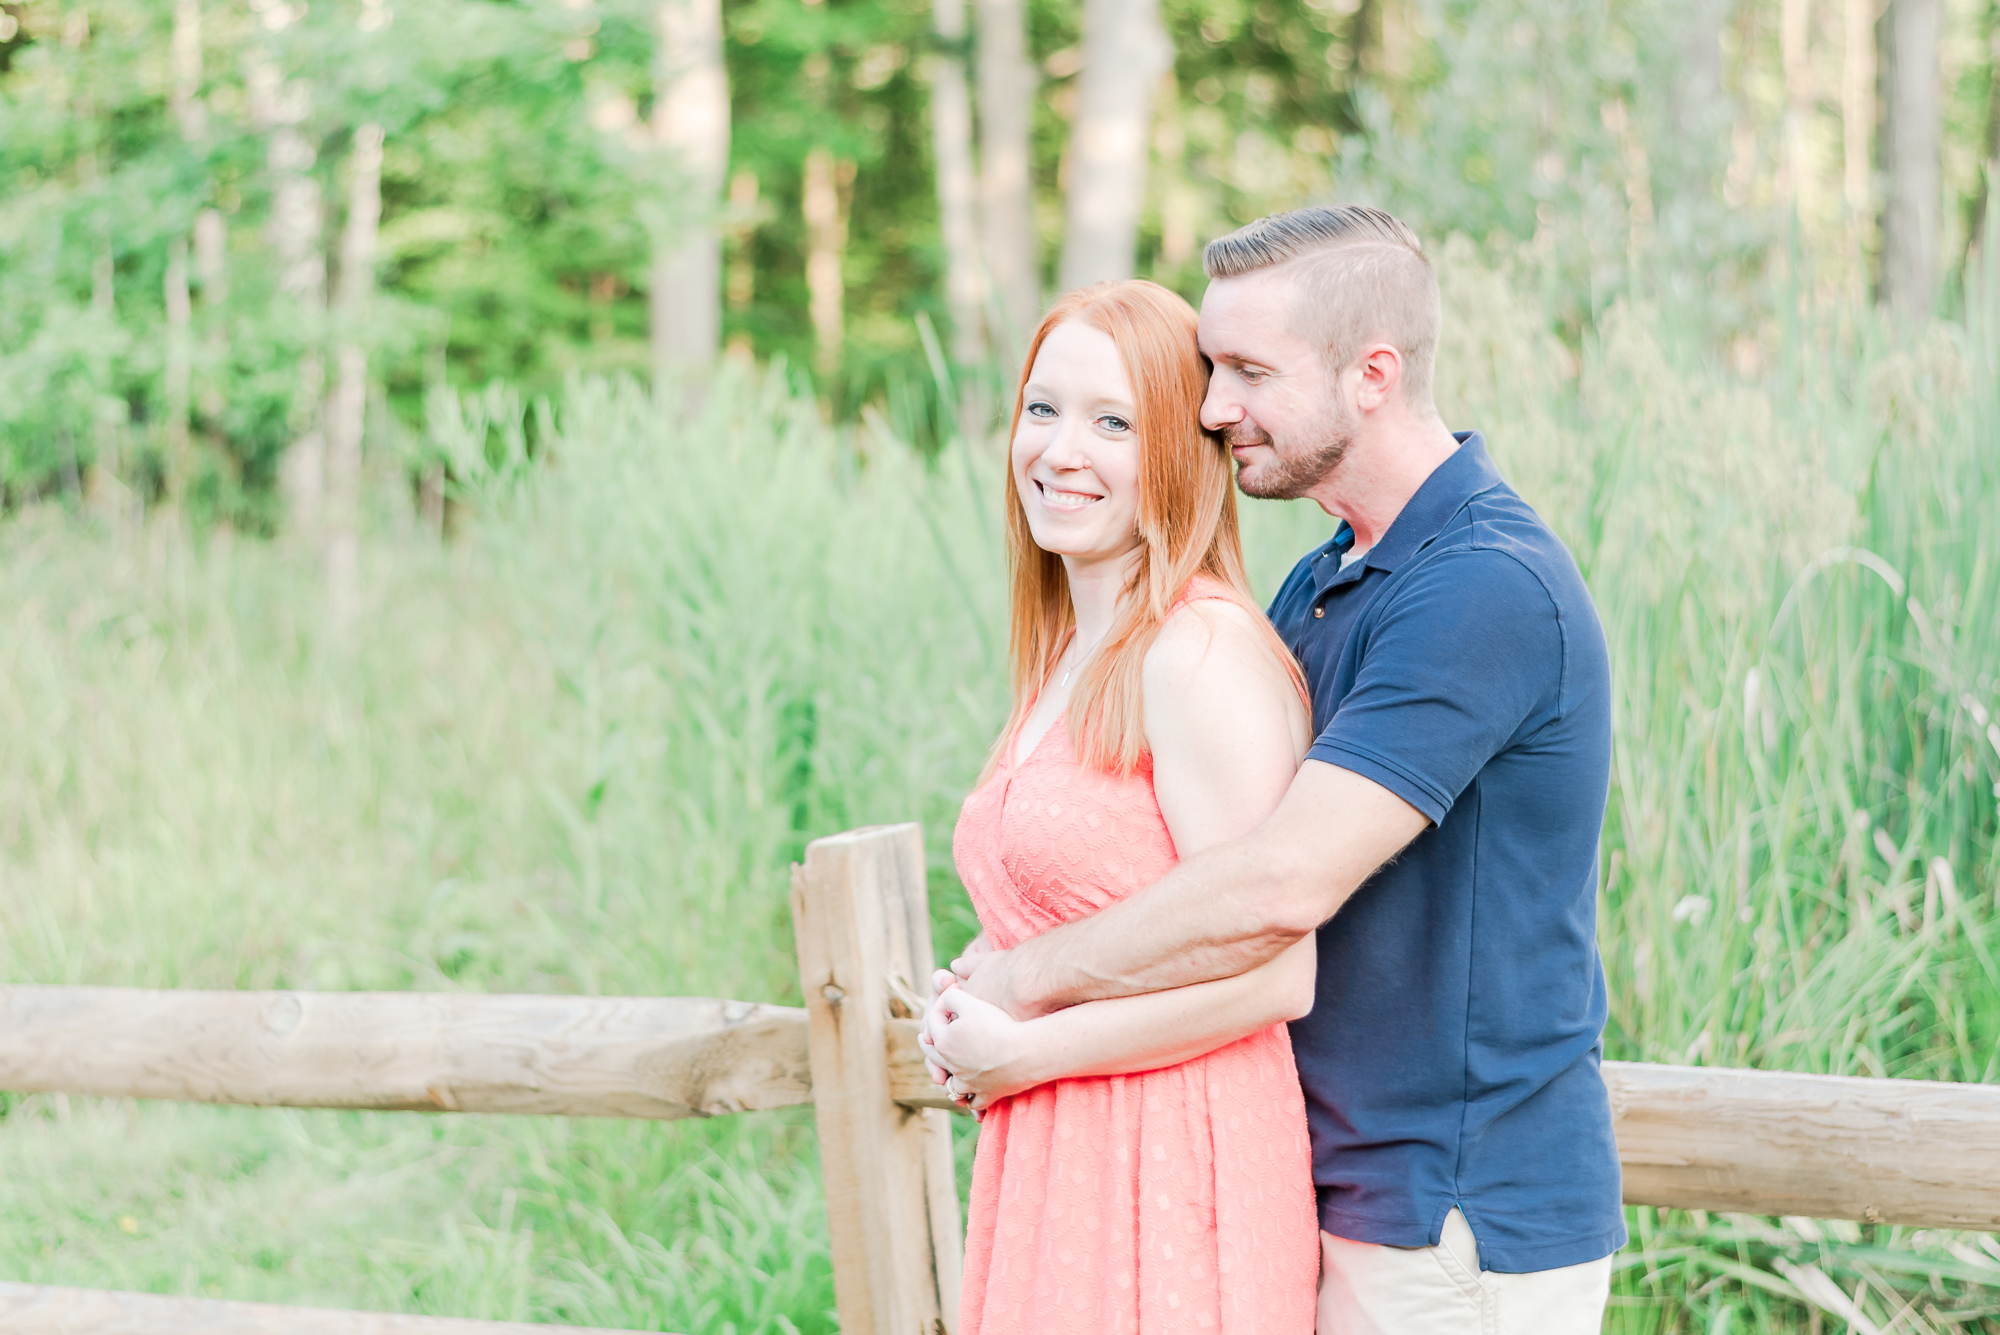 AB Favorites_Katy+Brian_Engagement Session_Brecksville Reservation_Brecksville_Ohio-3.jpg